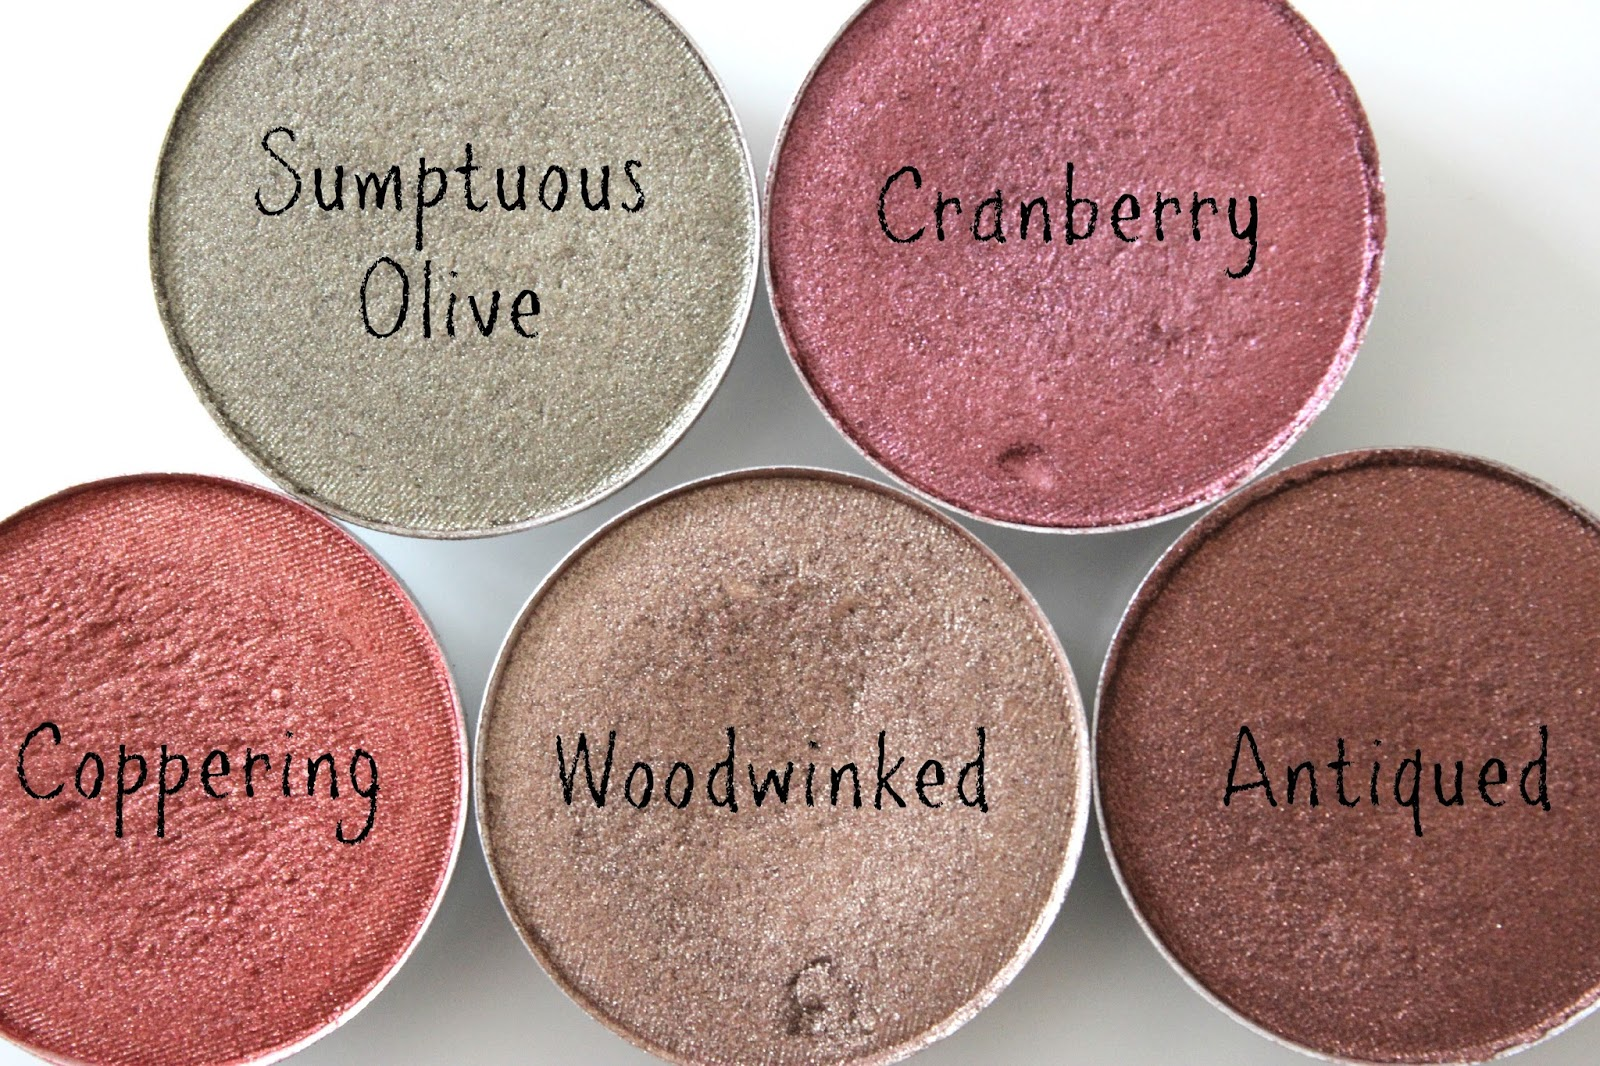 A picture of MAC Sumptuous Olive, Cranberry, Coppering, Woodwinked and Antiqued eyeshadows